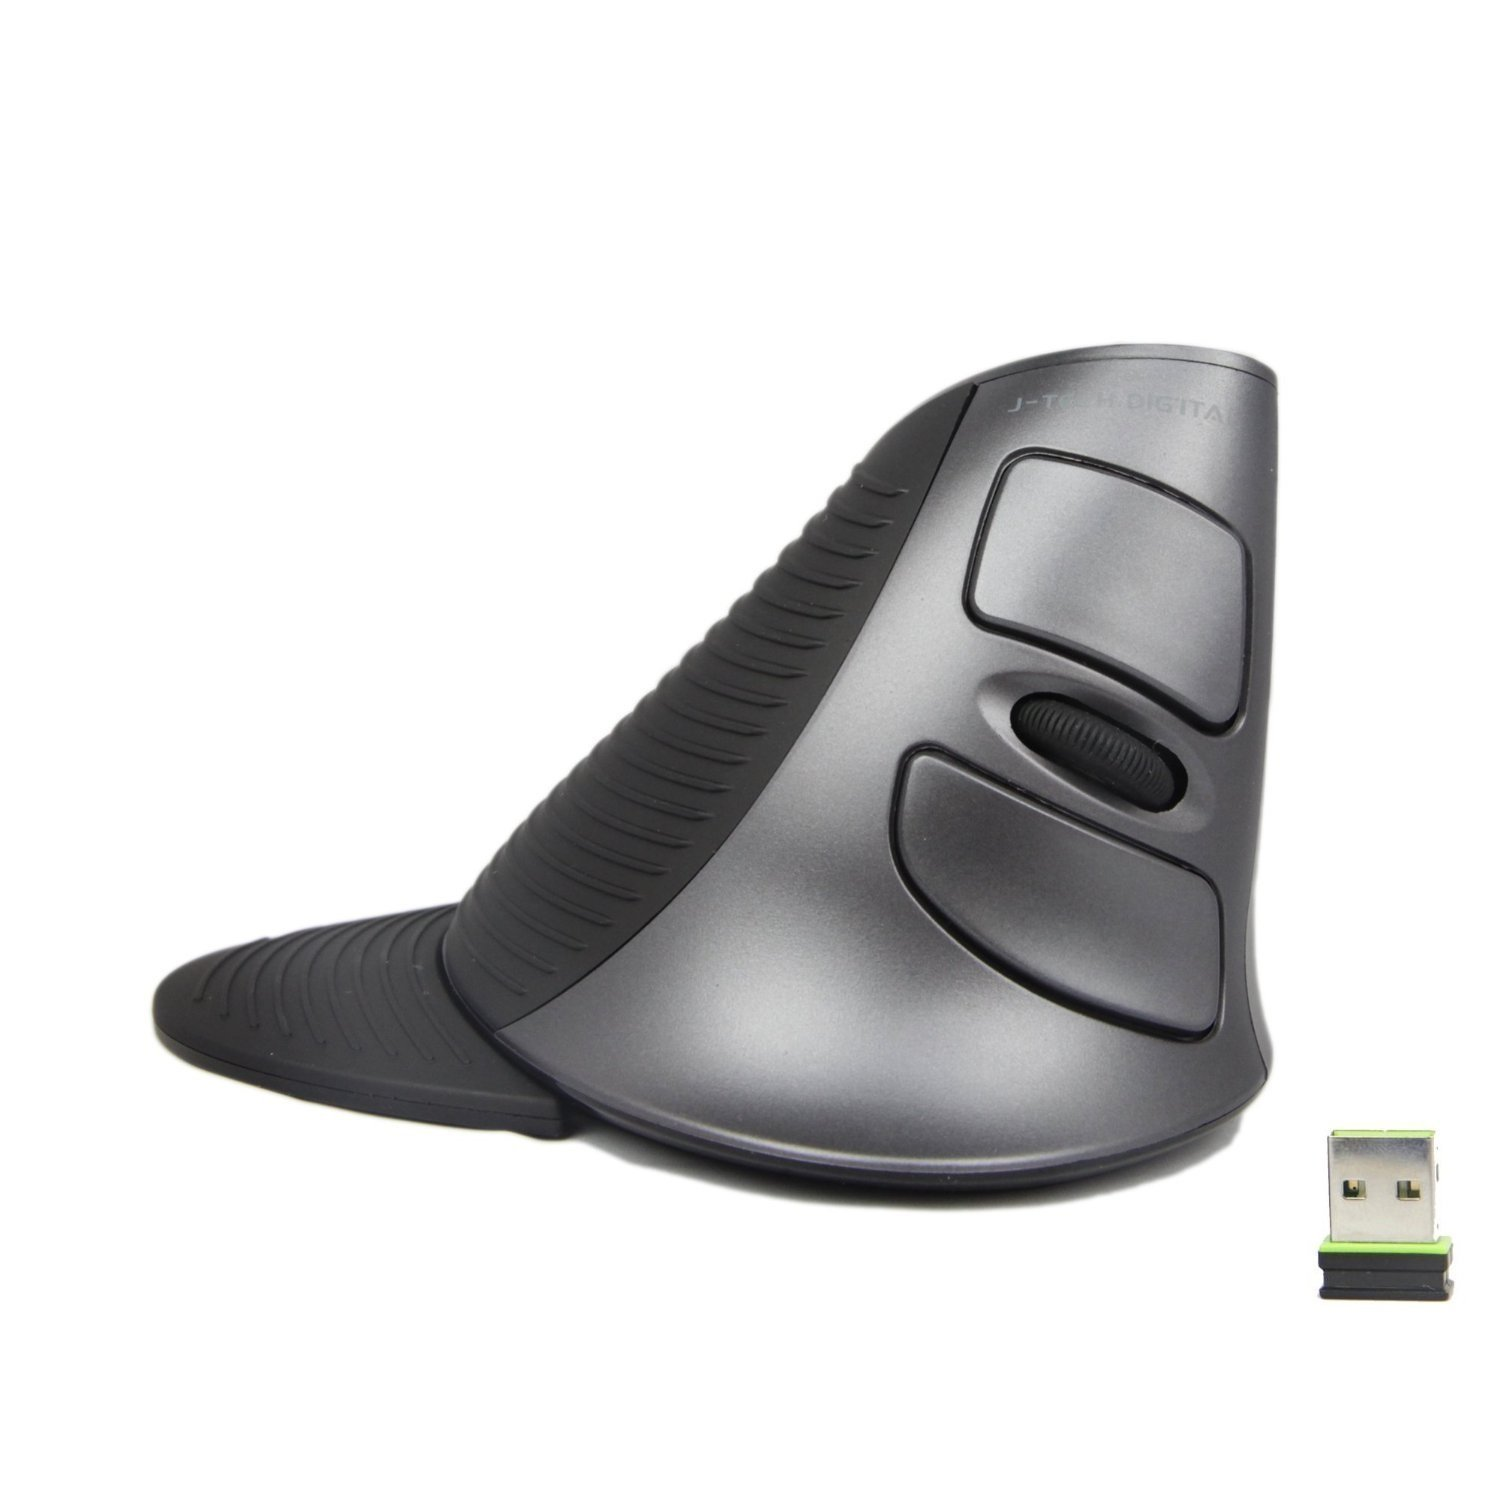 J-Tech Digital Scroll Endurance Wireless Mouse Ergonomic Vertical USB Mouse Adjustable Sensitivity (600/1000/1600 DPI), Removable Palm Rest & Thumb Buttons - Reduces Hand/Wrist Pain